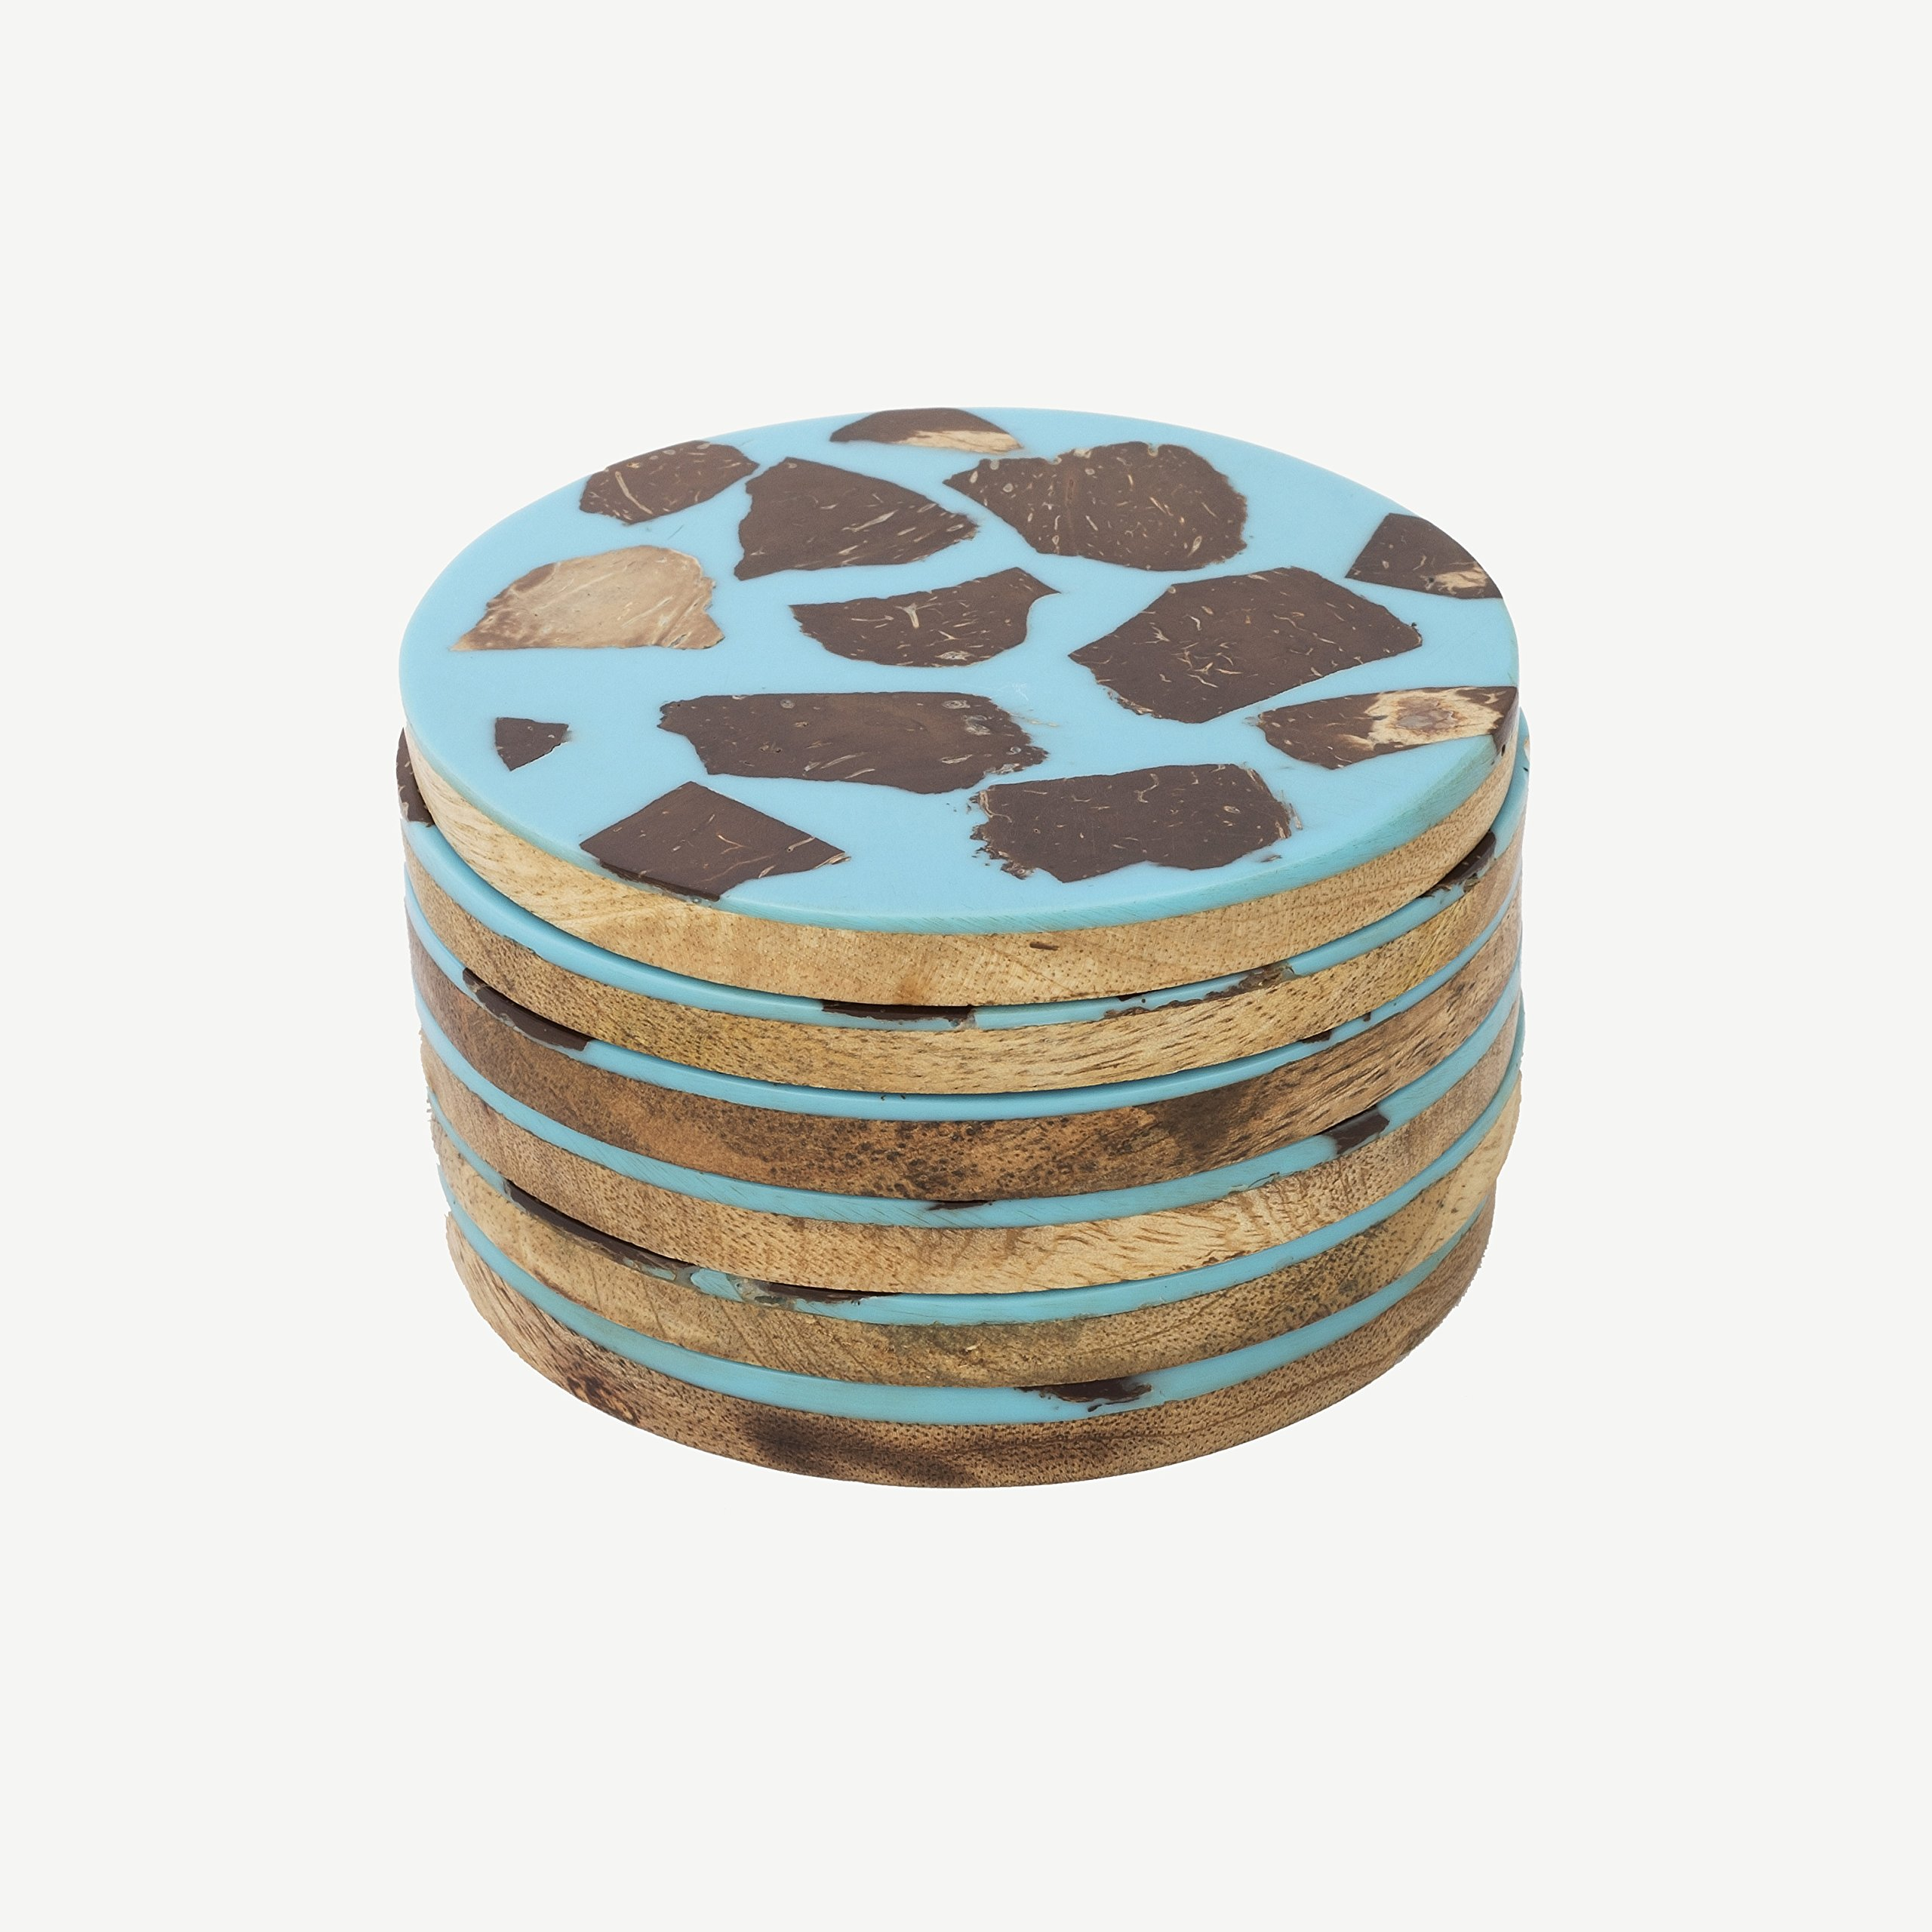 Rusticity Wood Cool Coaster Set of 6, Wood Layered with an Anti Slip Blue Coating of Resin & Coconut Shell   Mango Wood   Handmade   (4x4 in)